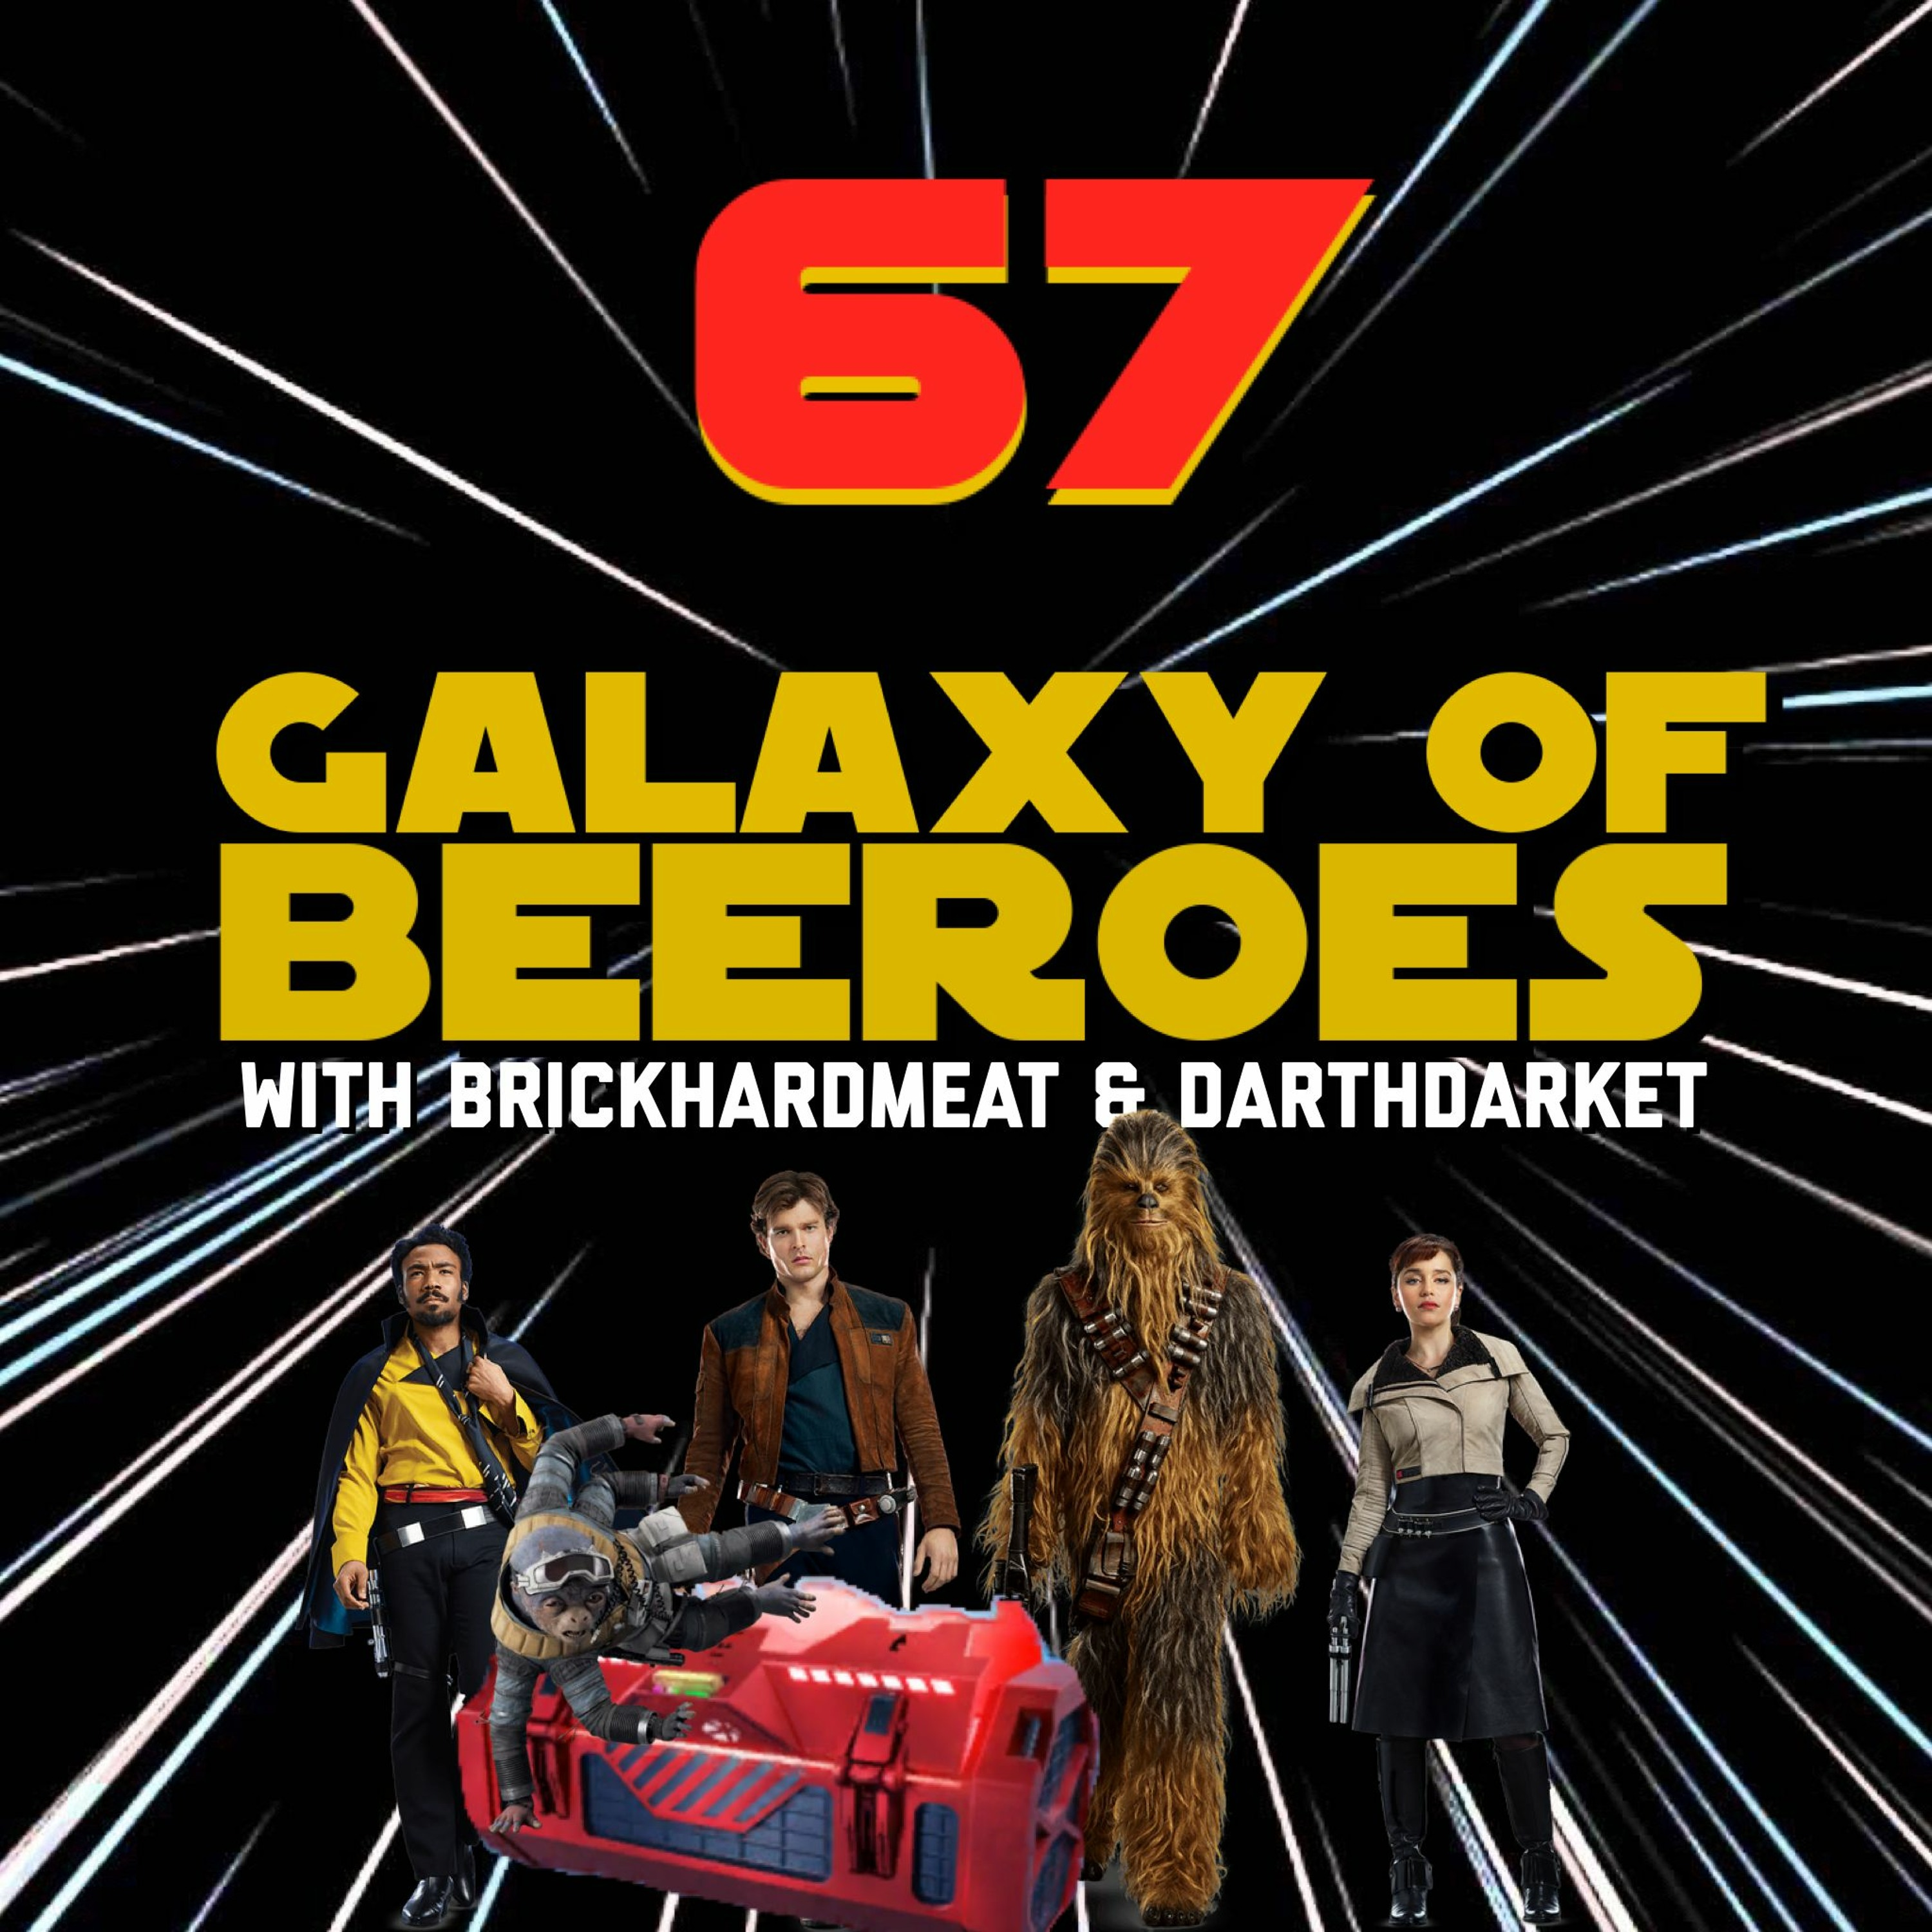 Episode 67 - Conquest Reactions & Solo Review - Hosted by Brickhardmeat & DarthDarket